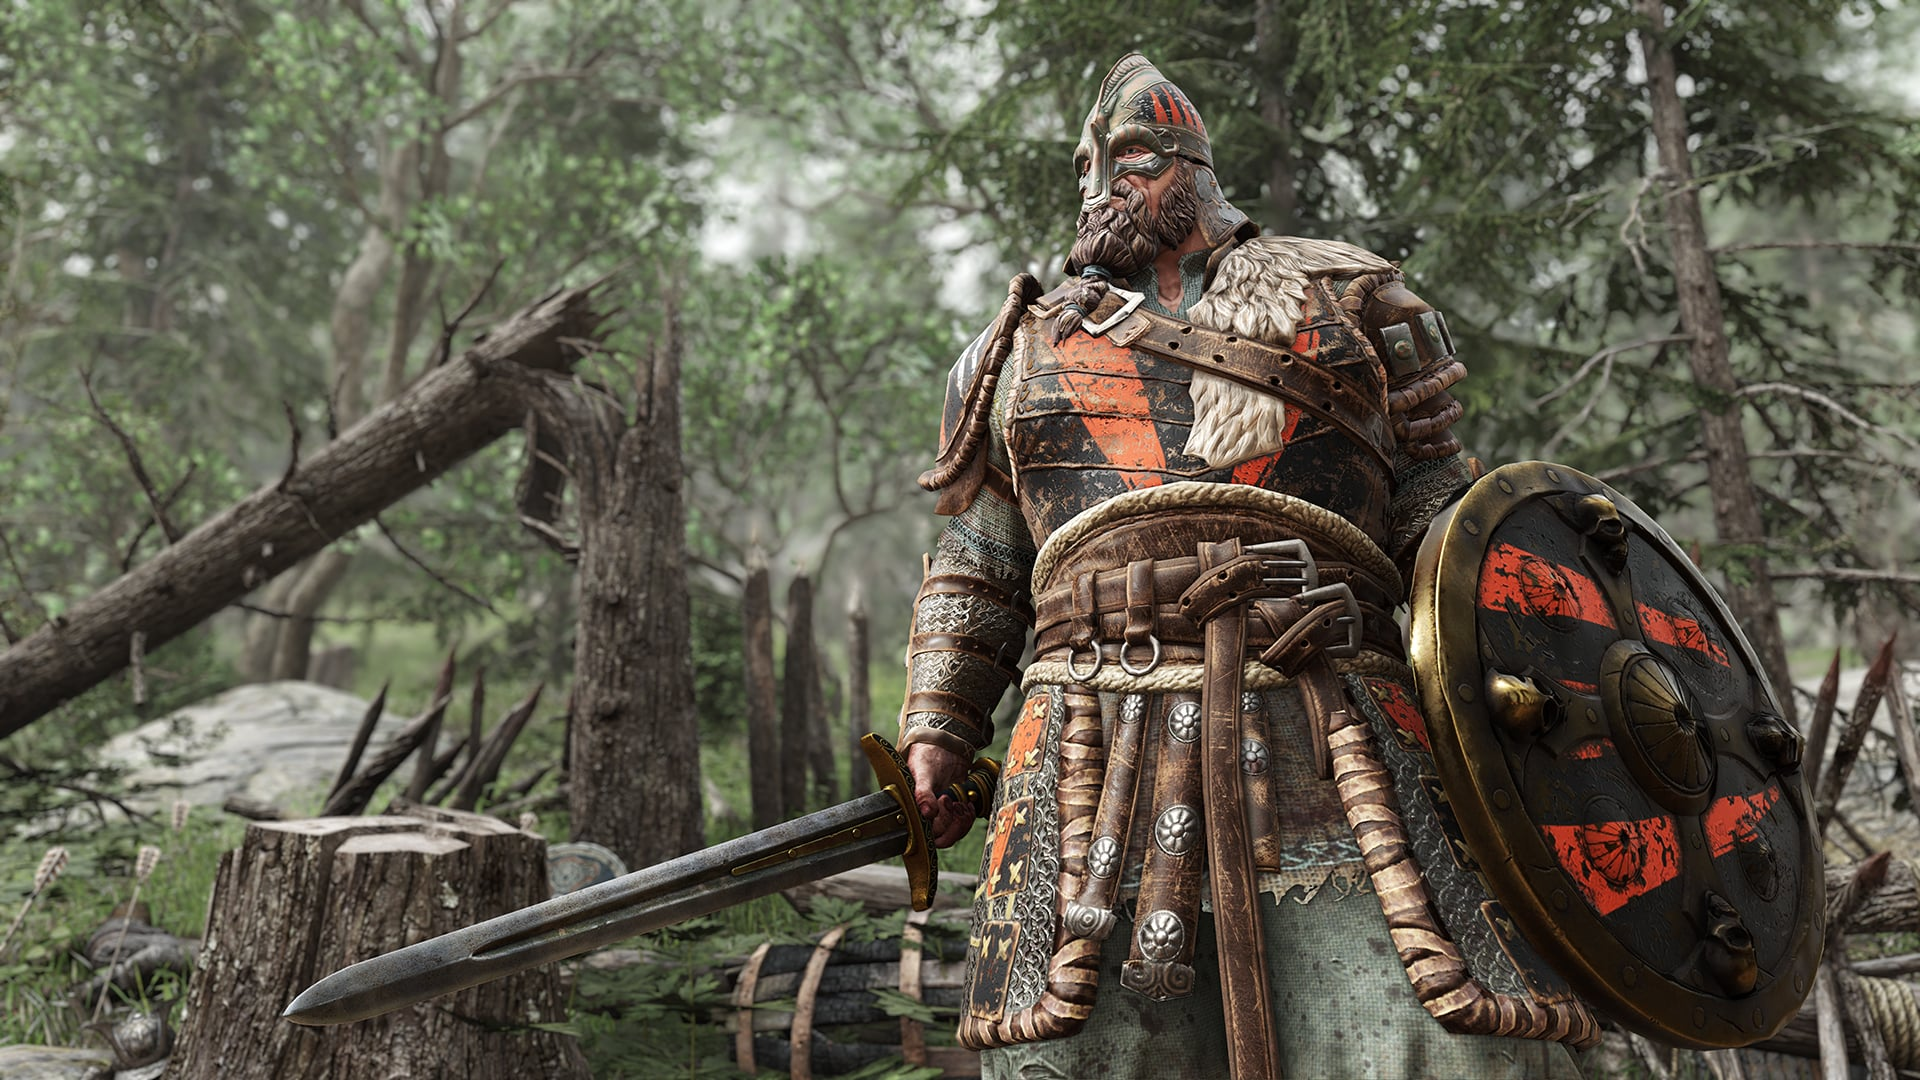 Wallpapers Hd Technology 14 For Honor 2015 Wallpapers Hd Download